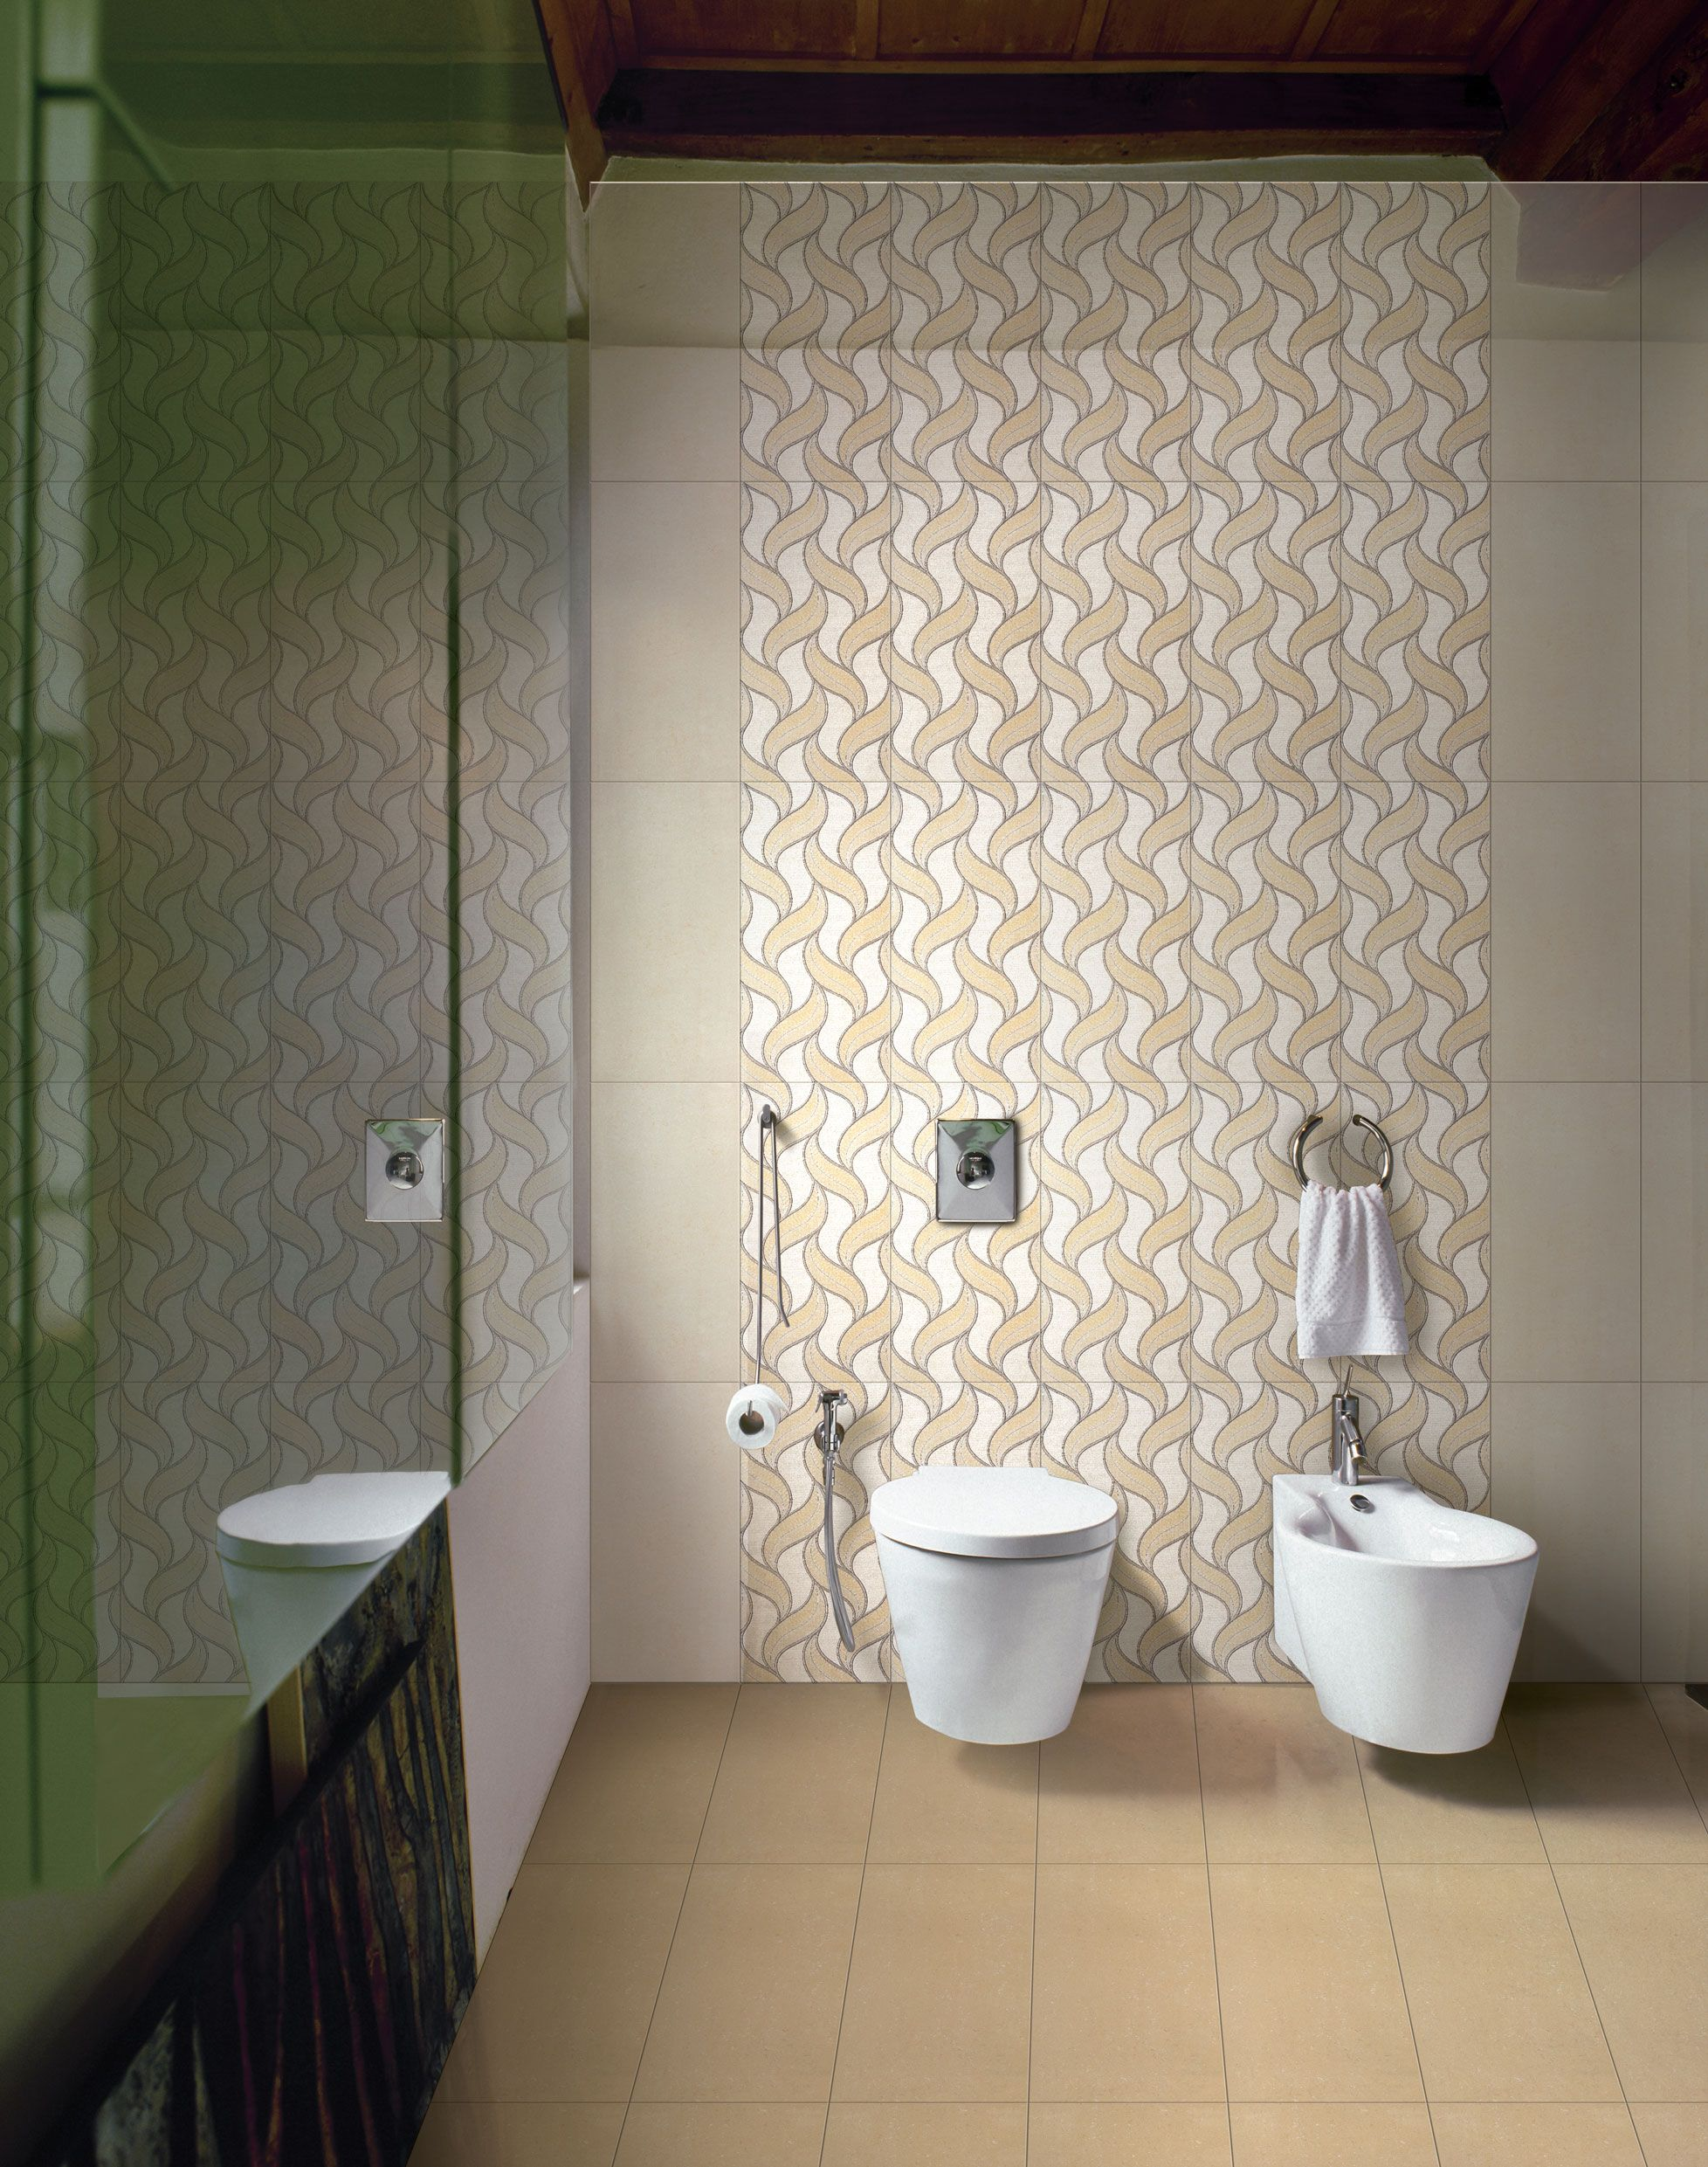 with for flooring bathroom ideas awesome of decorative tiles tile lighting image